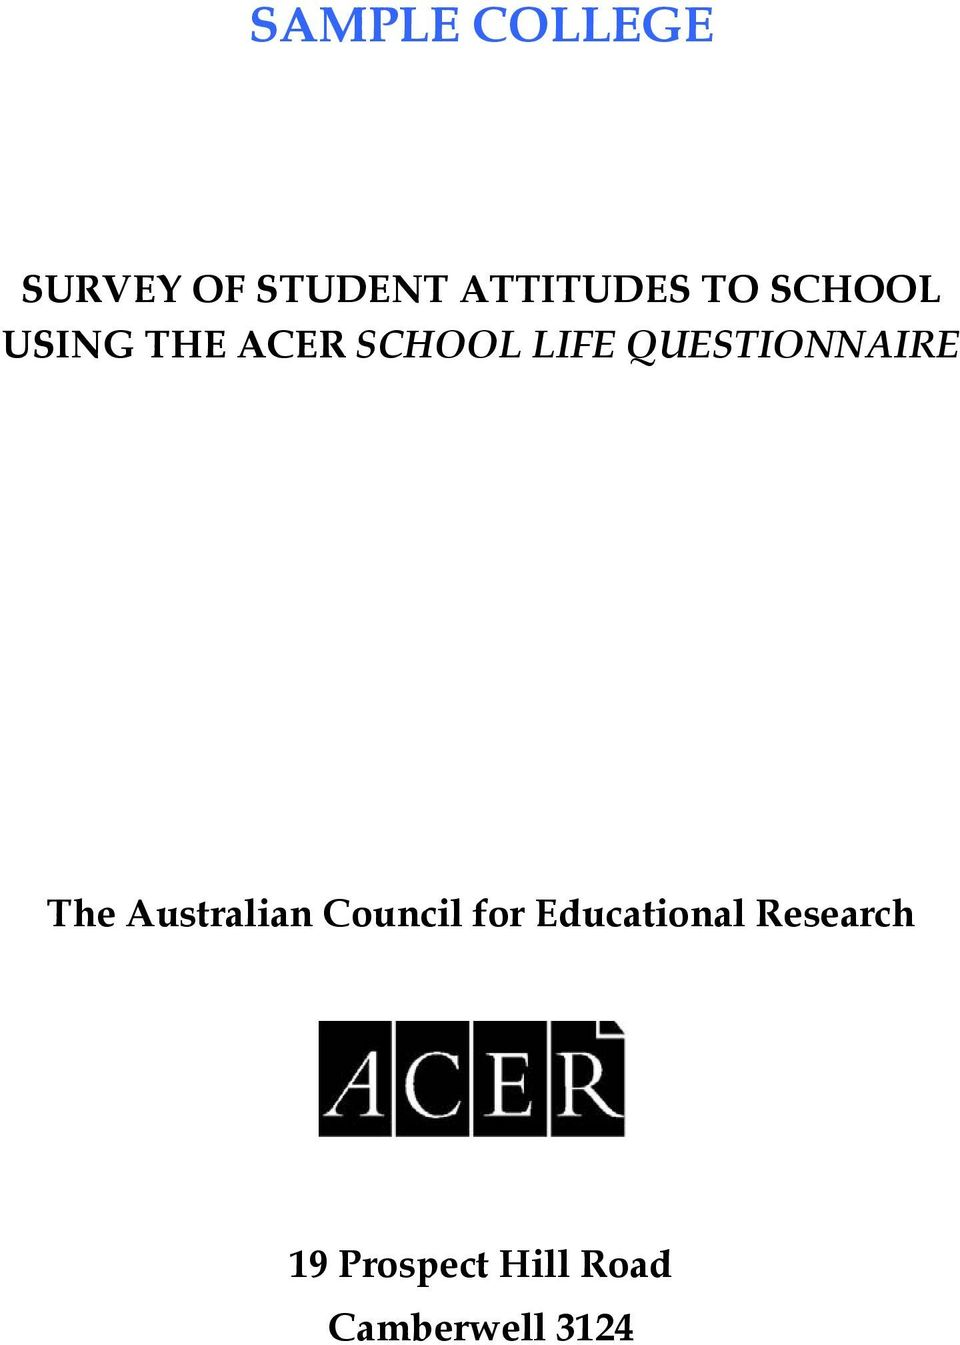 QUESTIONNAIRE The Australian Council for